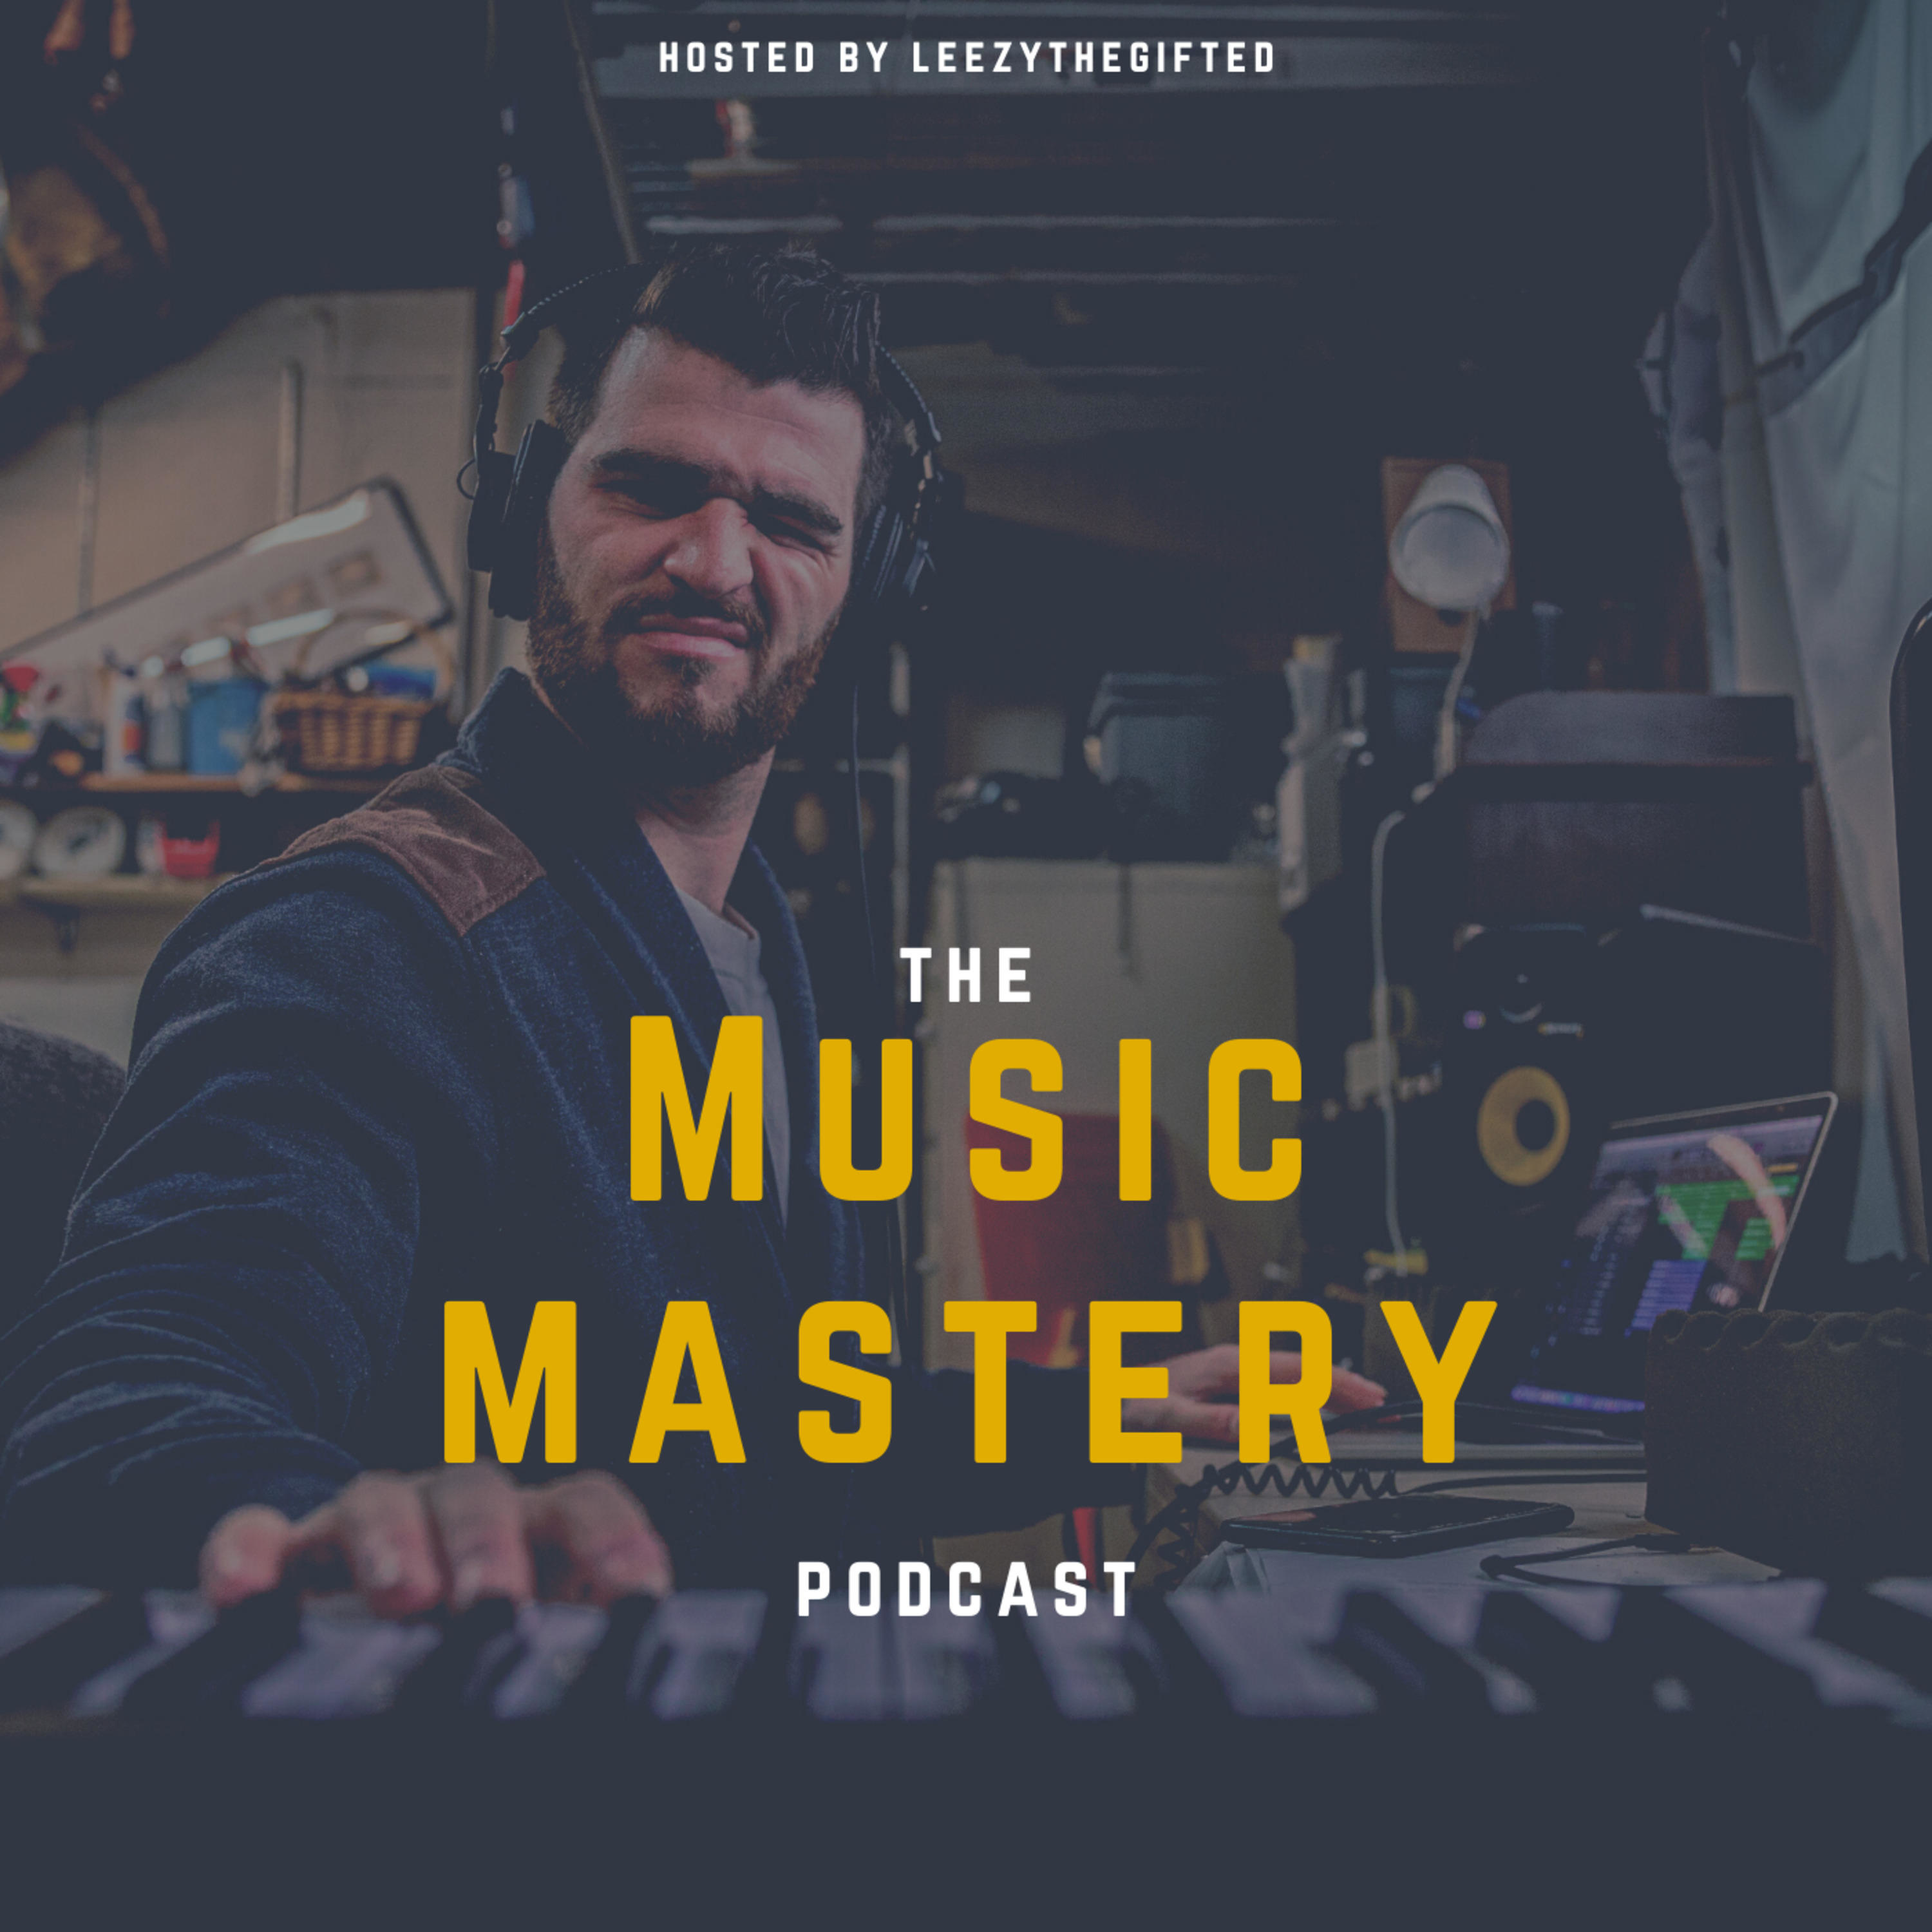 The Music Mastery Podcast w/Leezythegifted